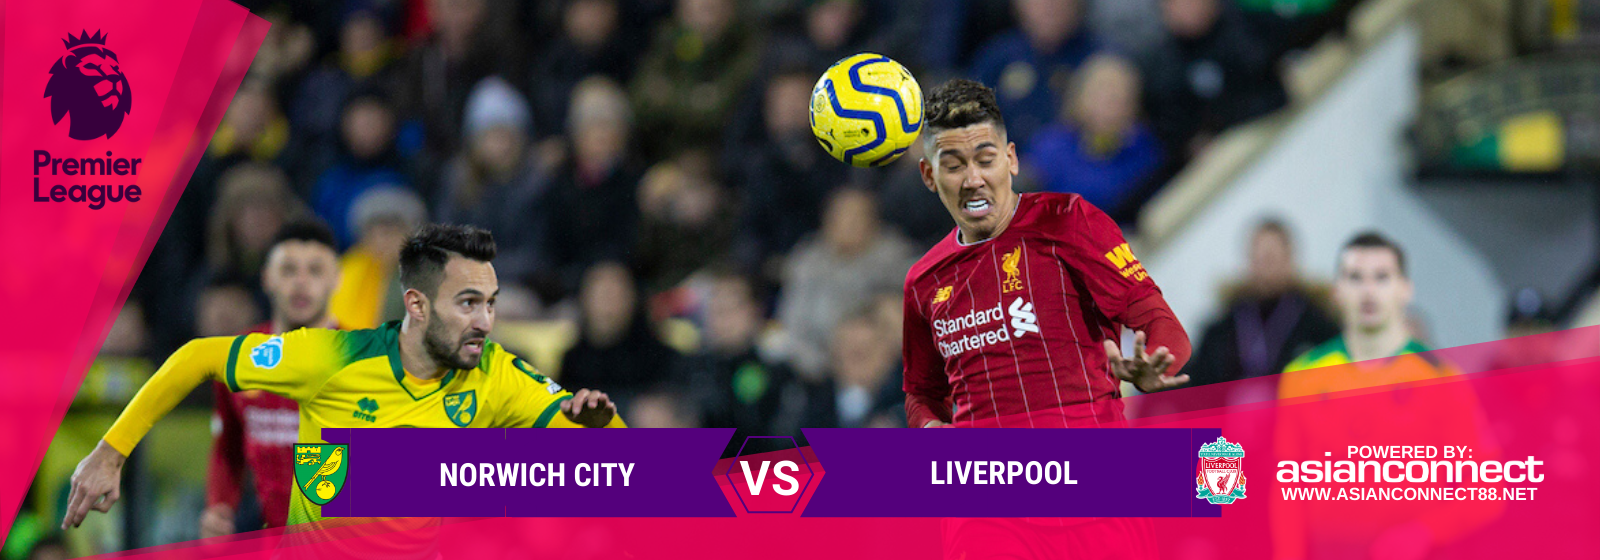 Asianconnect: Norwich City vs Liverpool Odds for February 15, 2020